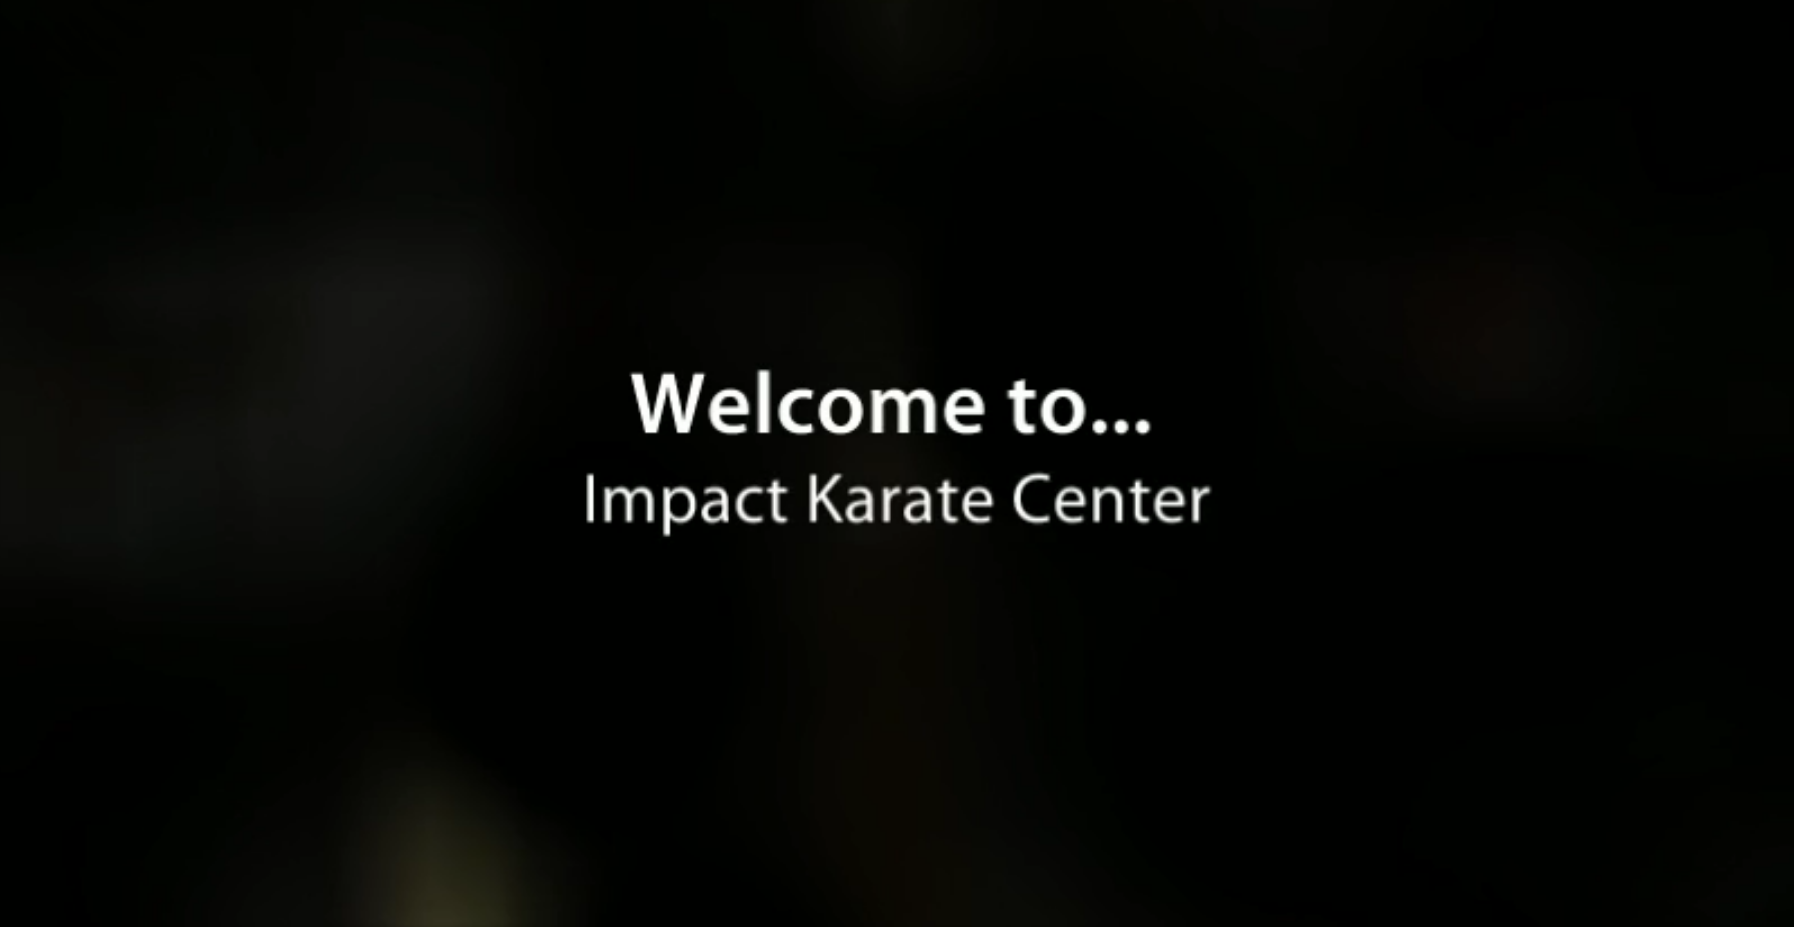 Impact Karate Center, in the Wesley Chapel - Zephyrhills Florida area, offers a variety of Okinawan Karate training programs that will fit your family needs